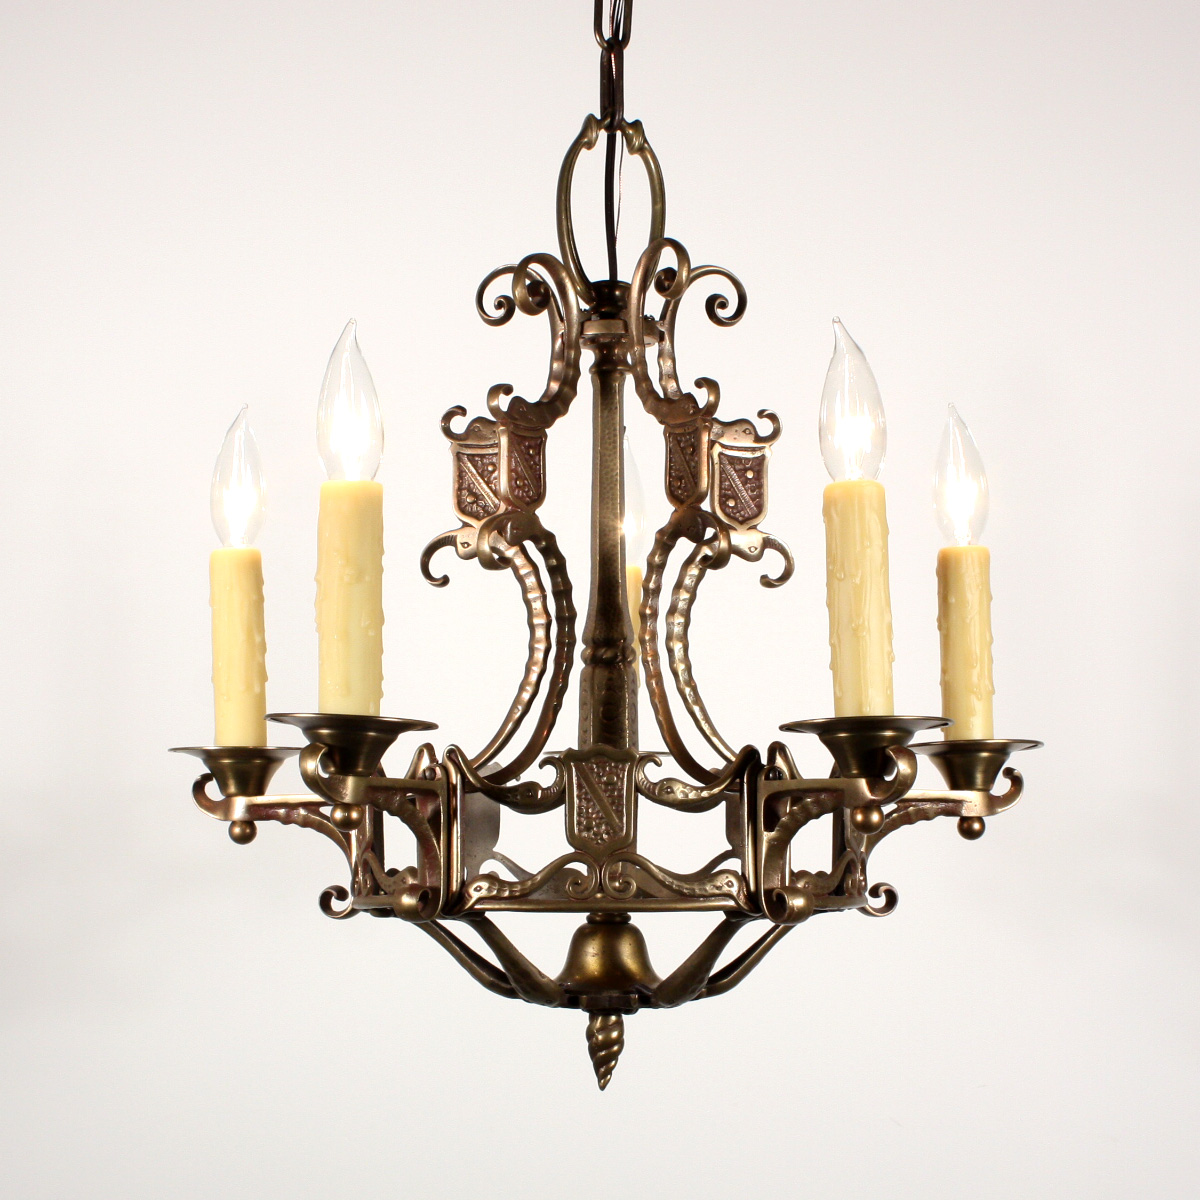 Antique Figural Spanish Revival Five Light Chandelier With